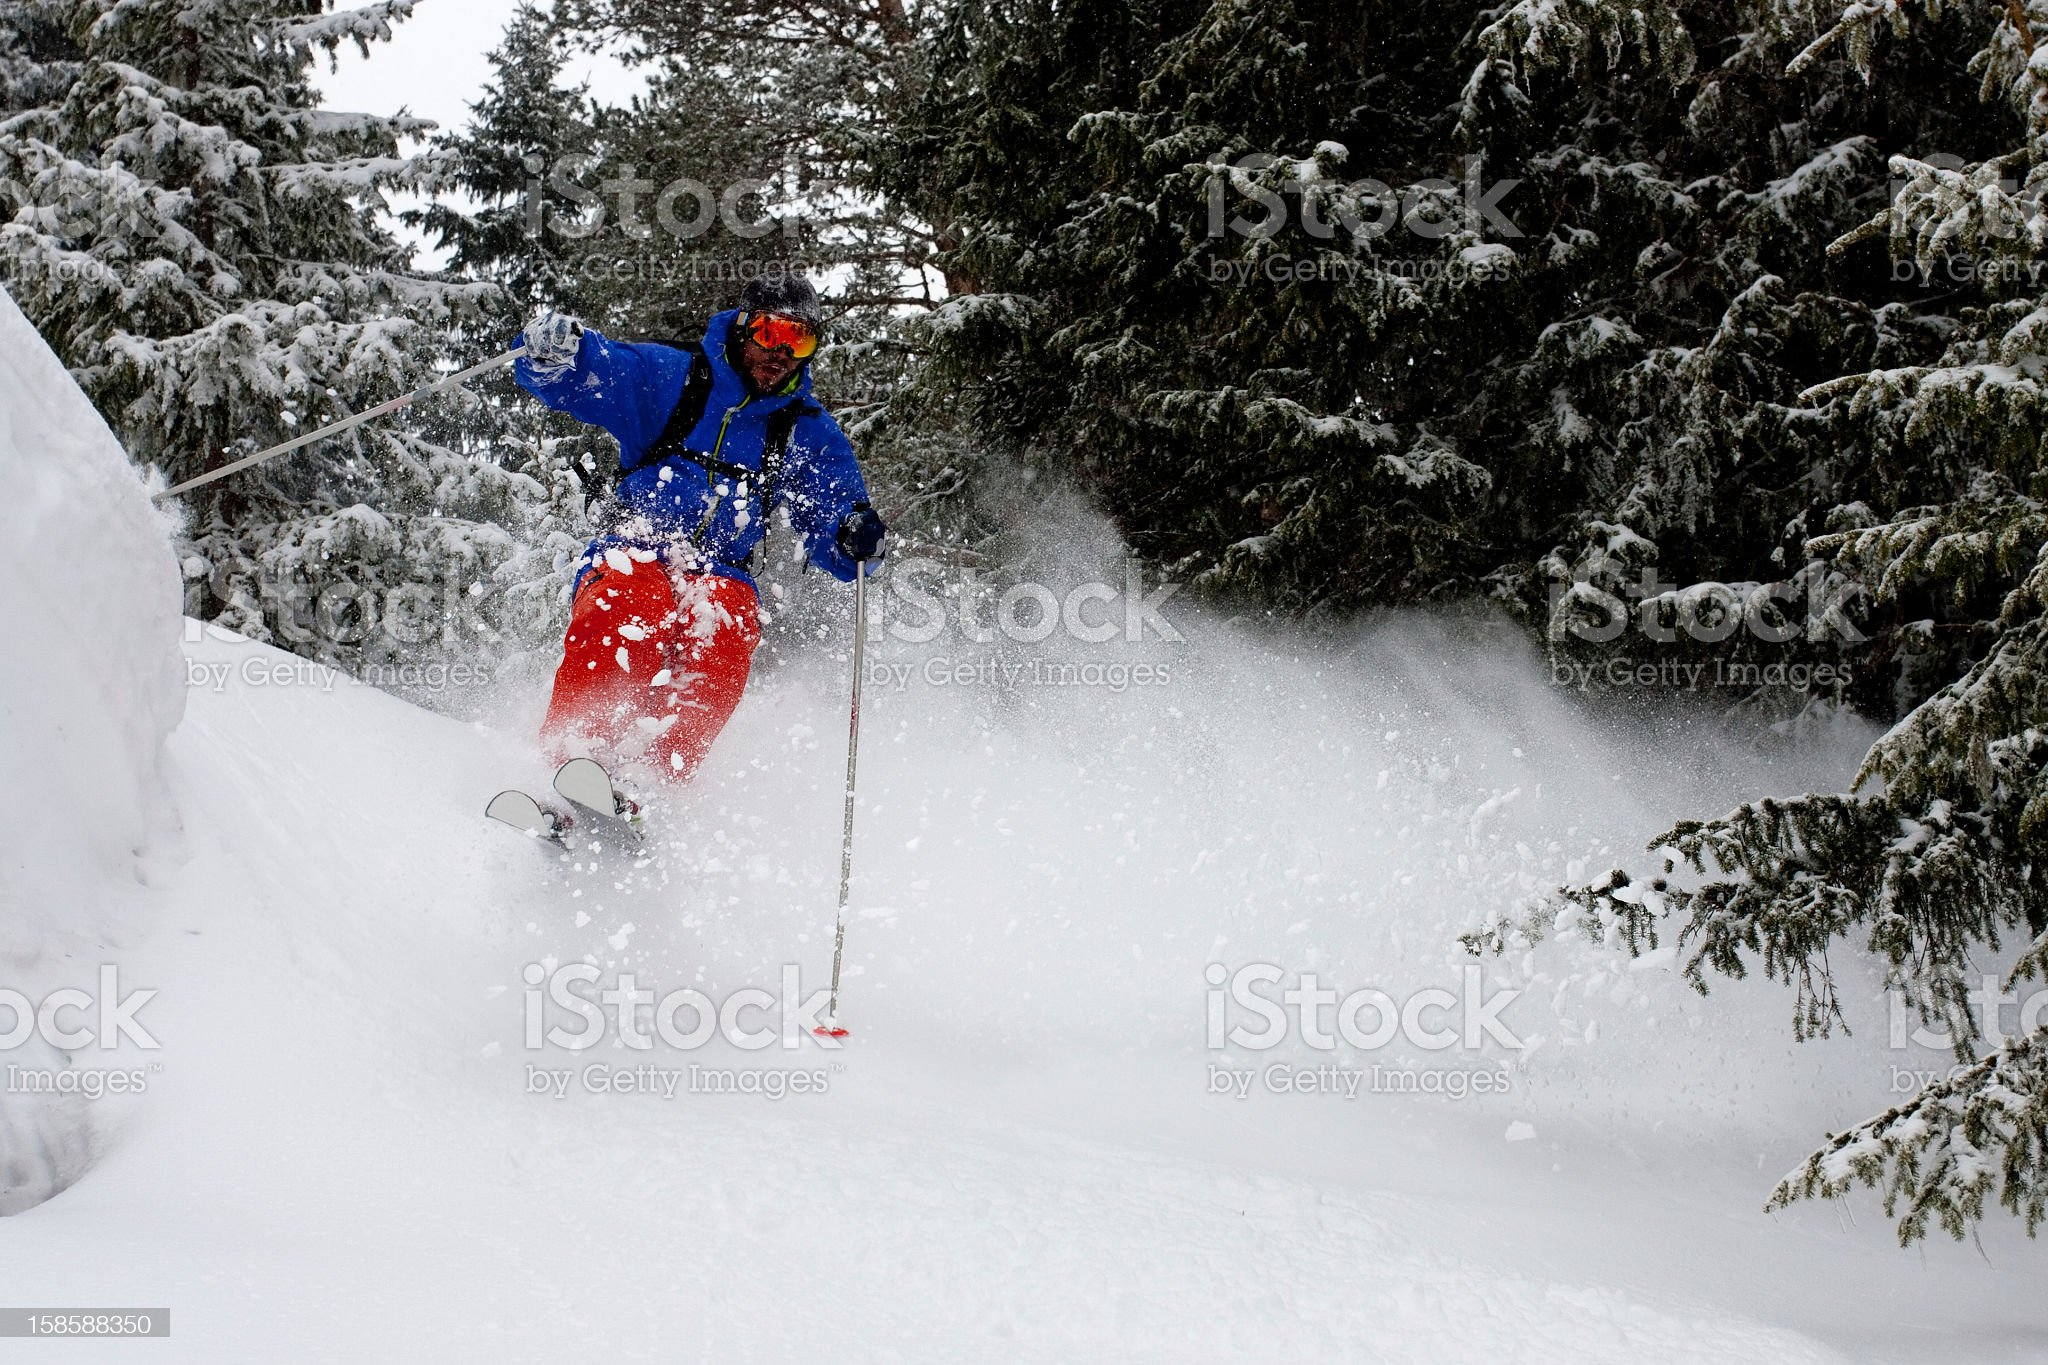 Skiing in a powder day royalty-free stock photo